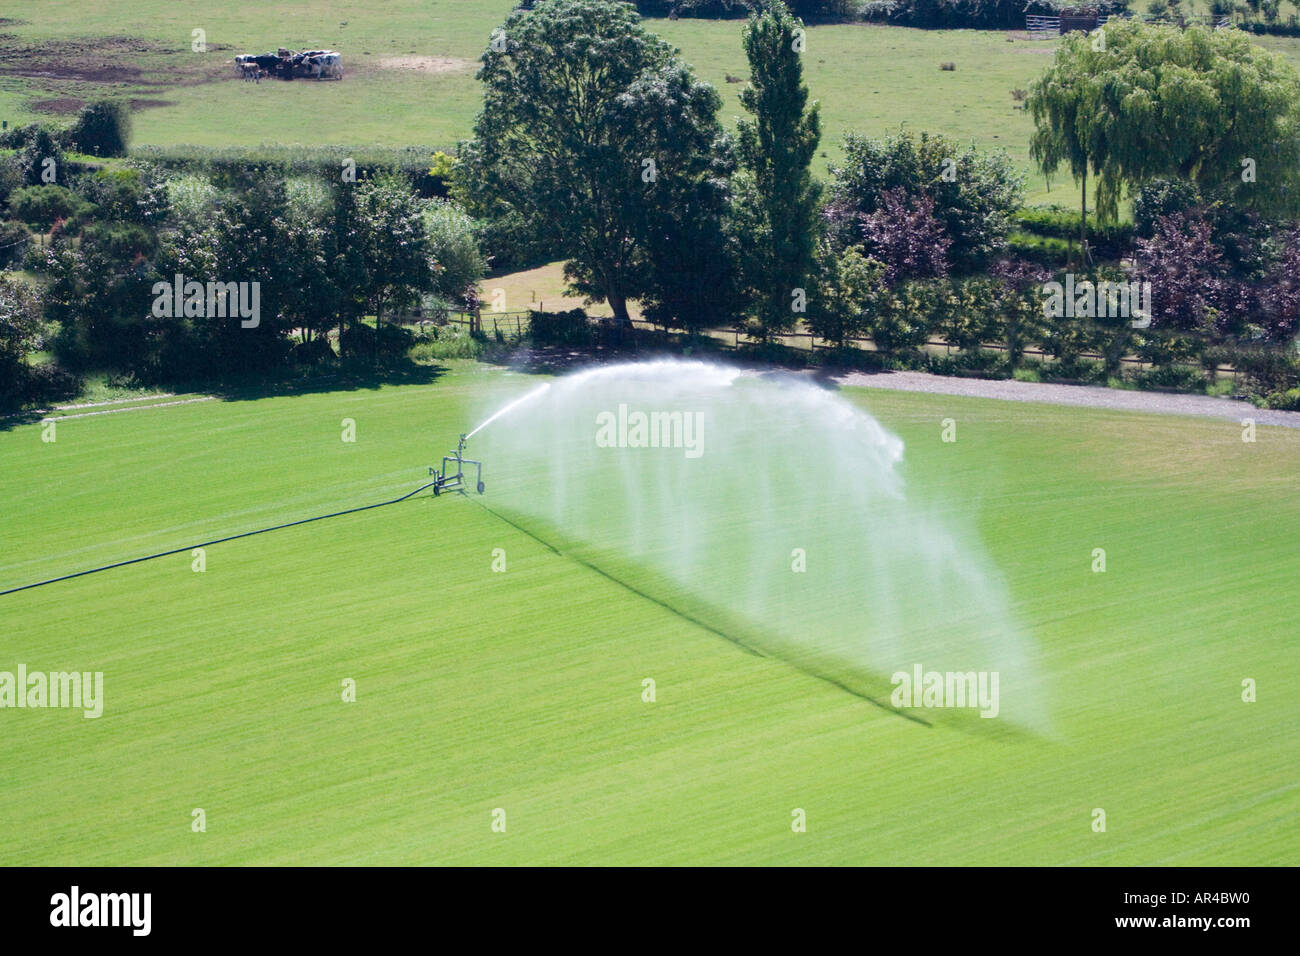 Aerial View Of Commercial Sprinkler. High Pressure Irrigation Of ...